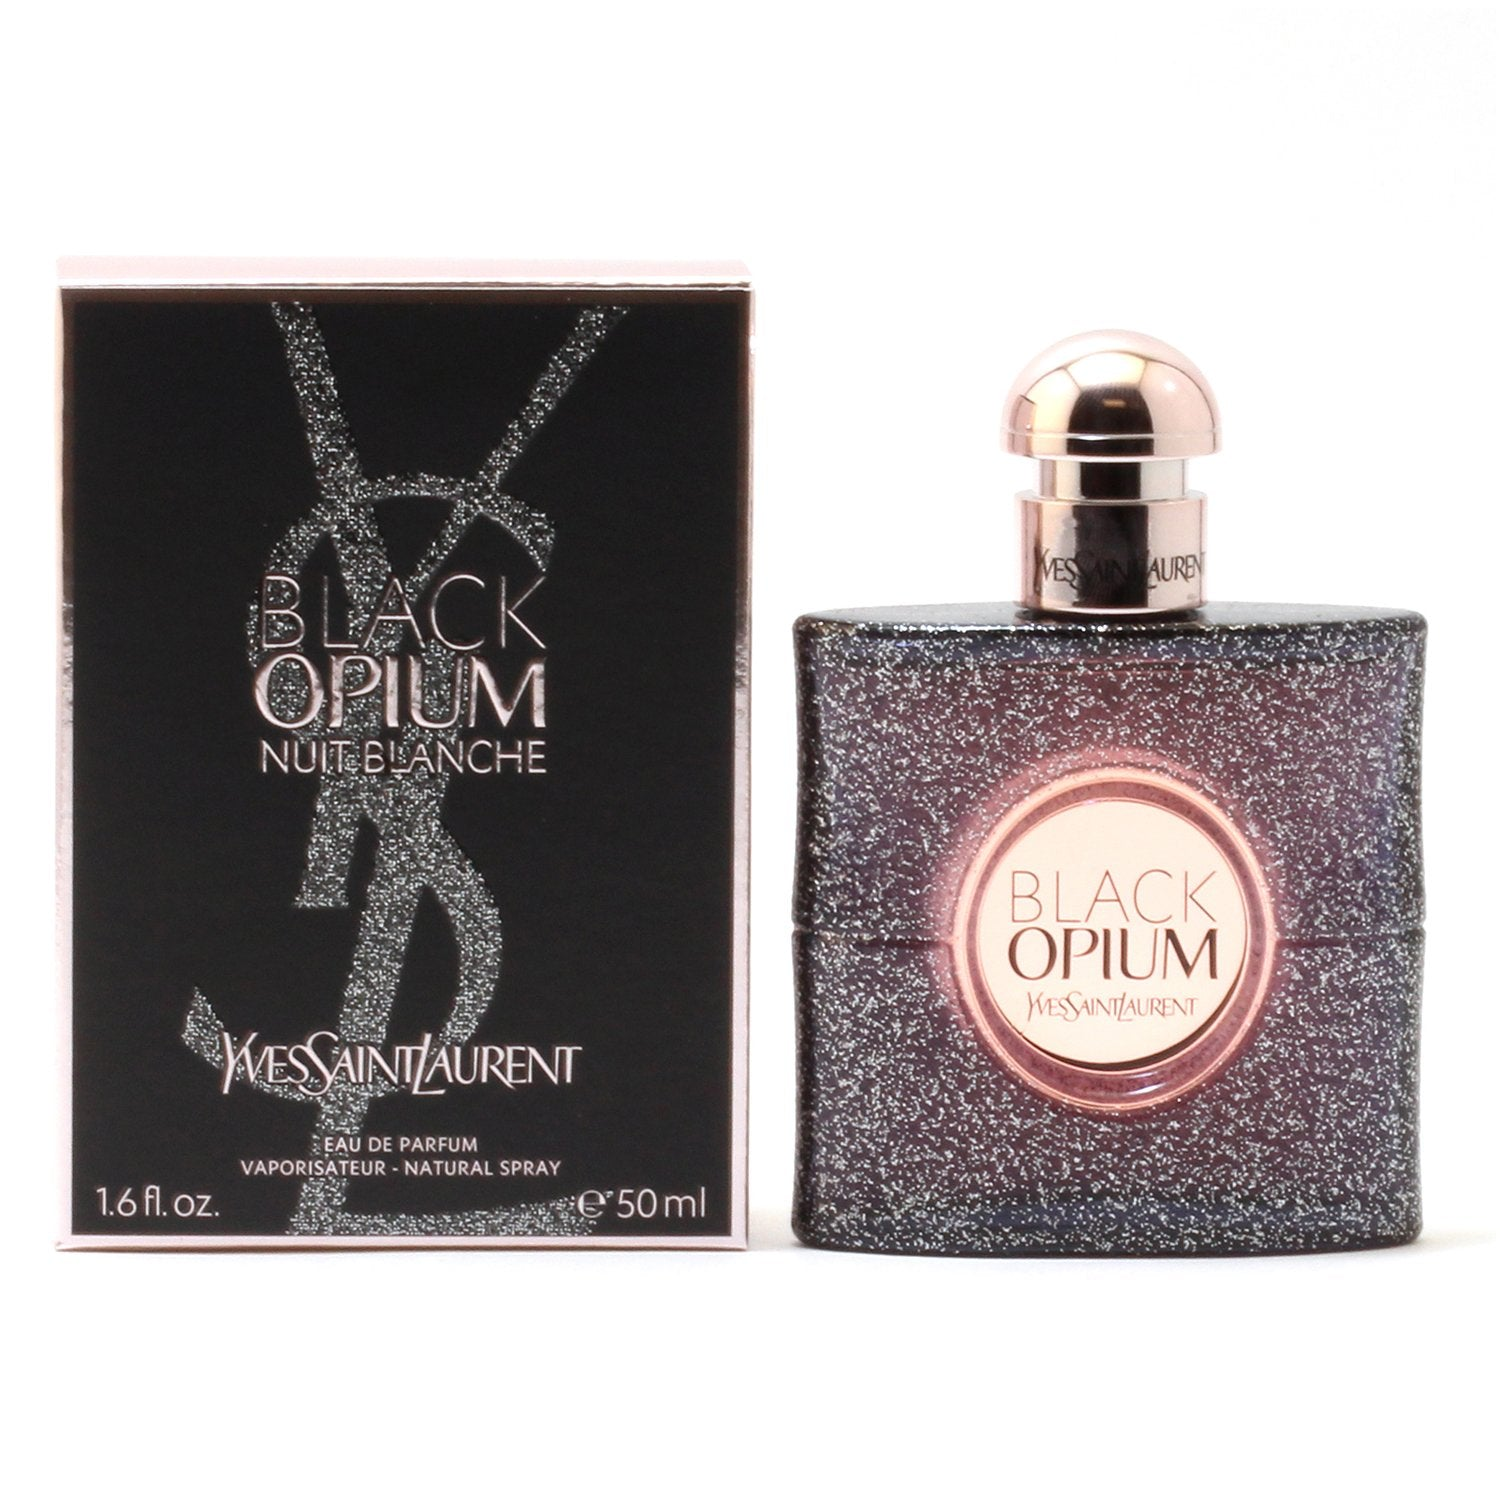 Perfume - BLACK OPIUM NUIT BLANCHE FOR WOMEN BY YVES ST LAURENT - EAU DE PARFUM SPRAY, 1.7 OZ